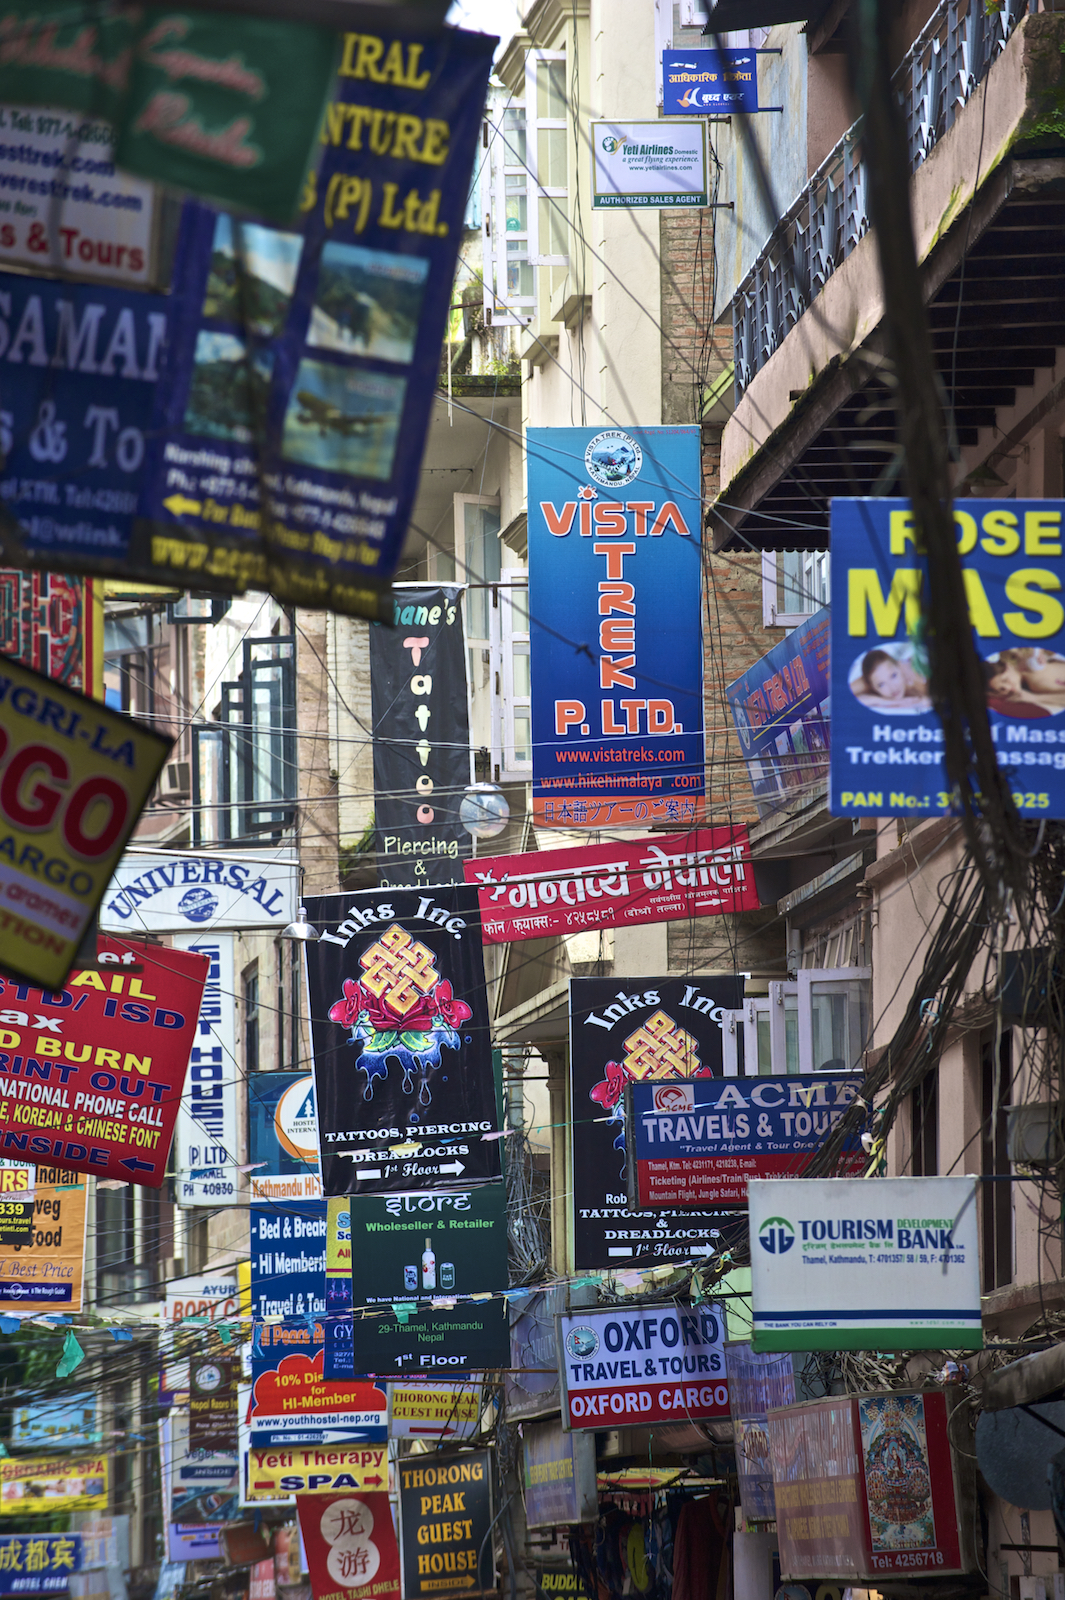 Signs for businesses in Thamel, Kathmandu Nepal.  Image by New Orleans based travel photographer, Marc Pagani - marcpagani.com